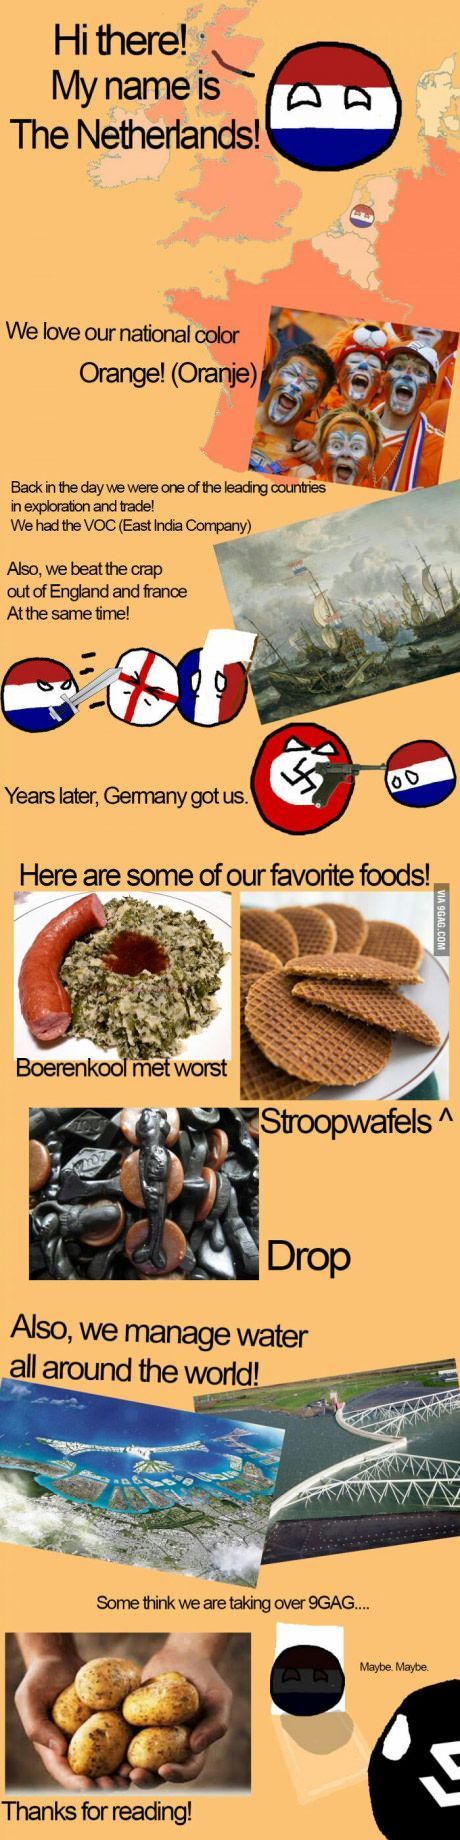 Meet the Netherlands